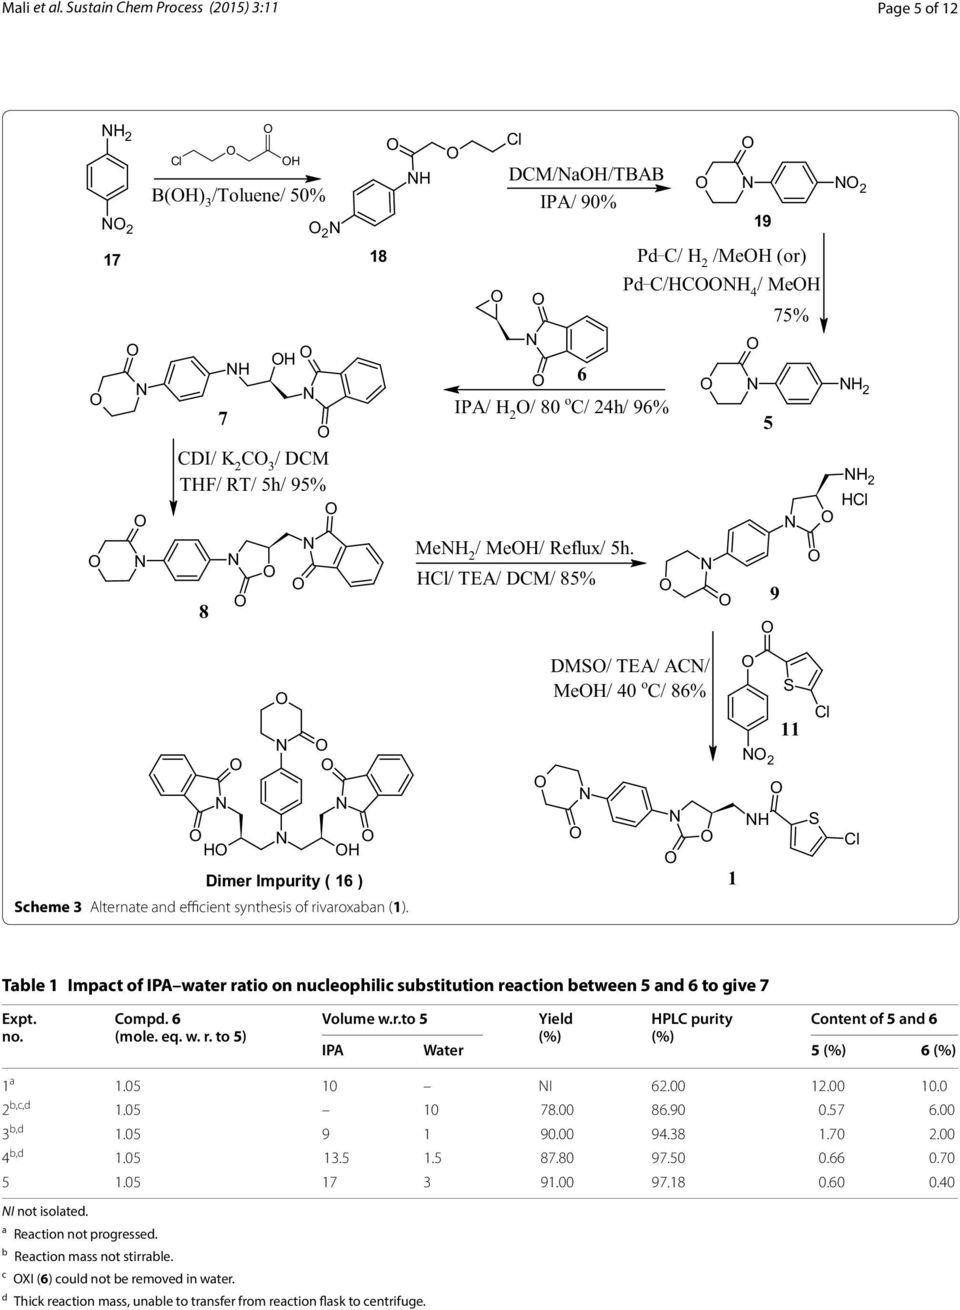 H/ TEA/ DCM/ 85% 2 H 2 9 Pd _ C/ H 2 /MeH (or) Pd _ C/HCH 4 / MeH 5 75% 9 H 2 H H H Dimer Impurity ( 6 ) cheme 3 Alternate and efficient synthesis of rivaroxaban ().